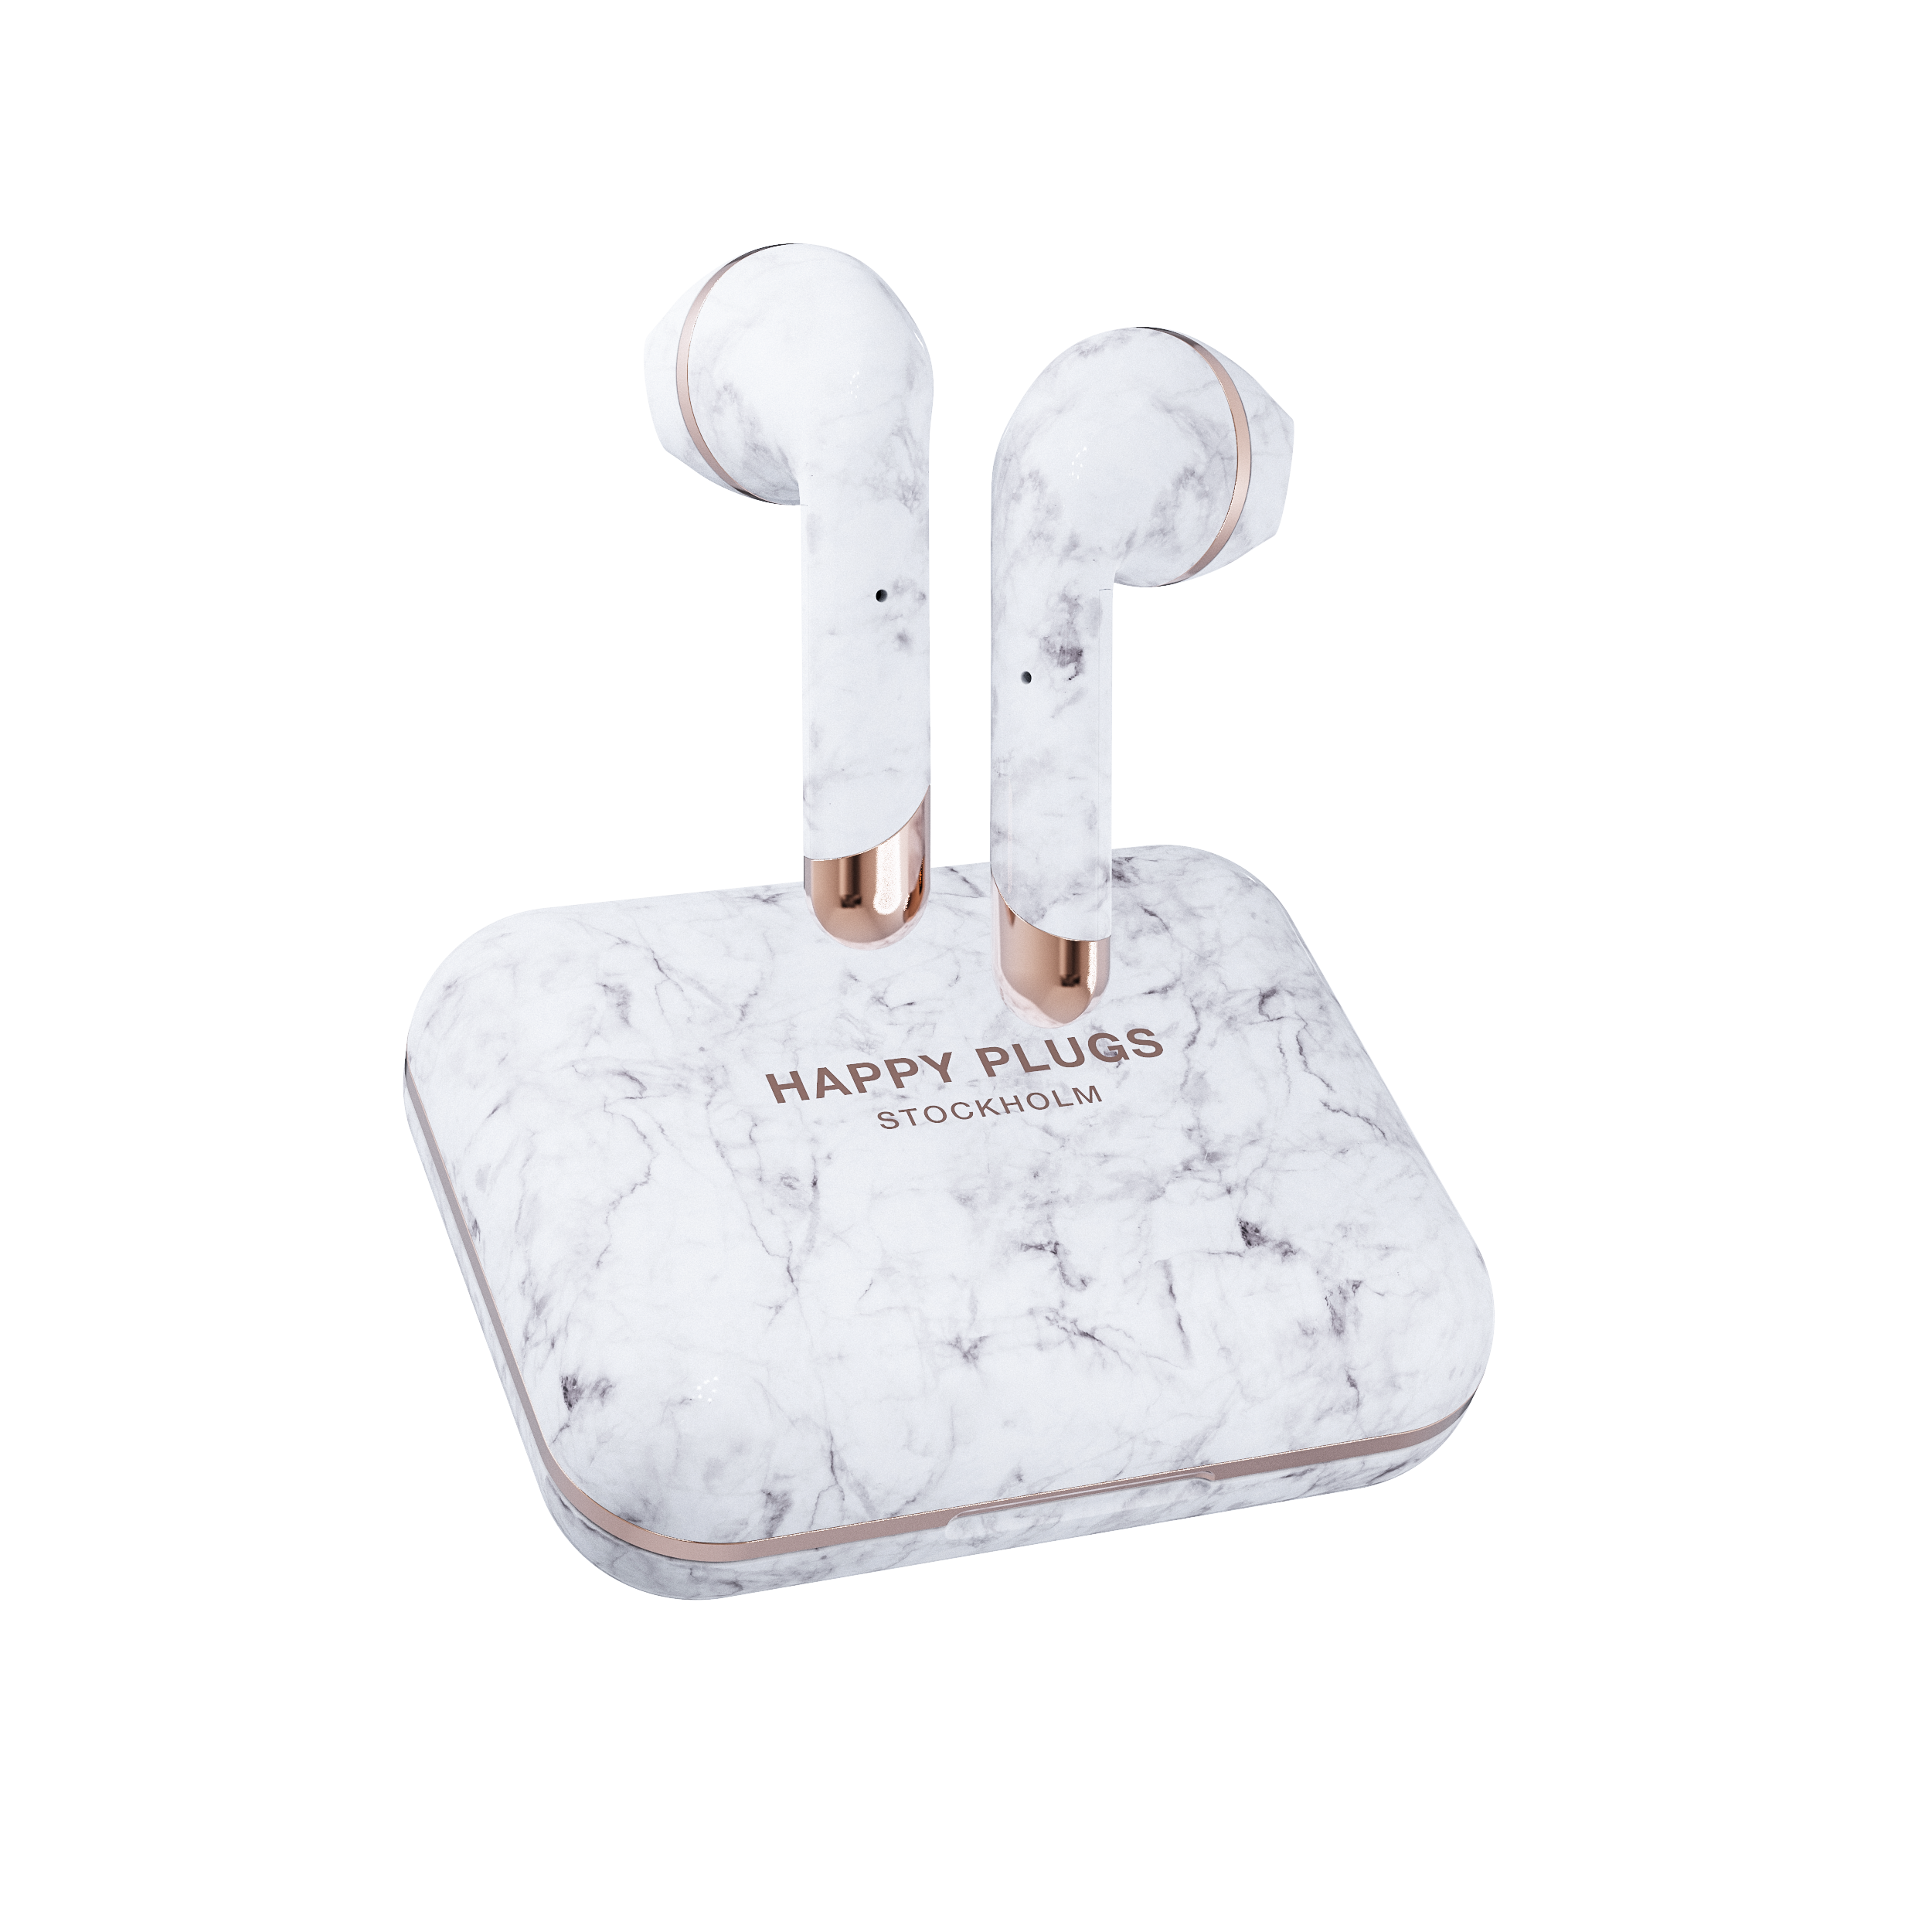 AIR 1 PLUS EARBUD WHITE MARBLE 1654